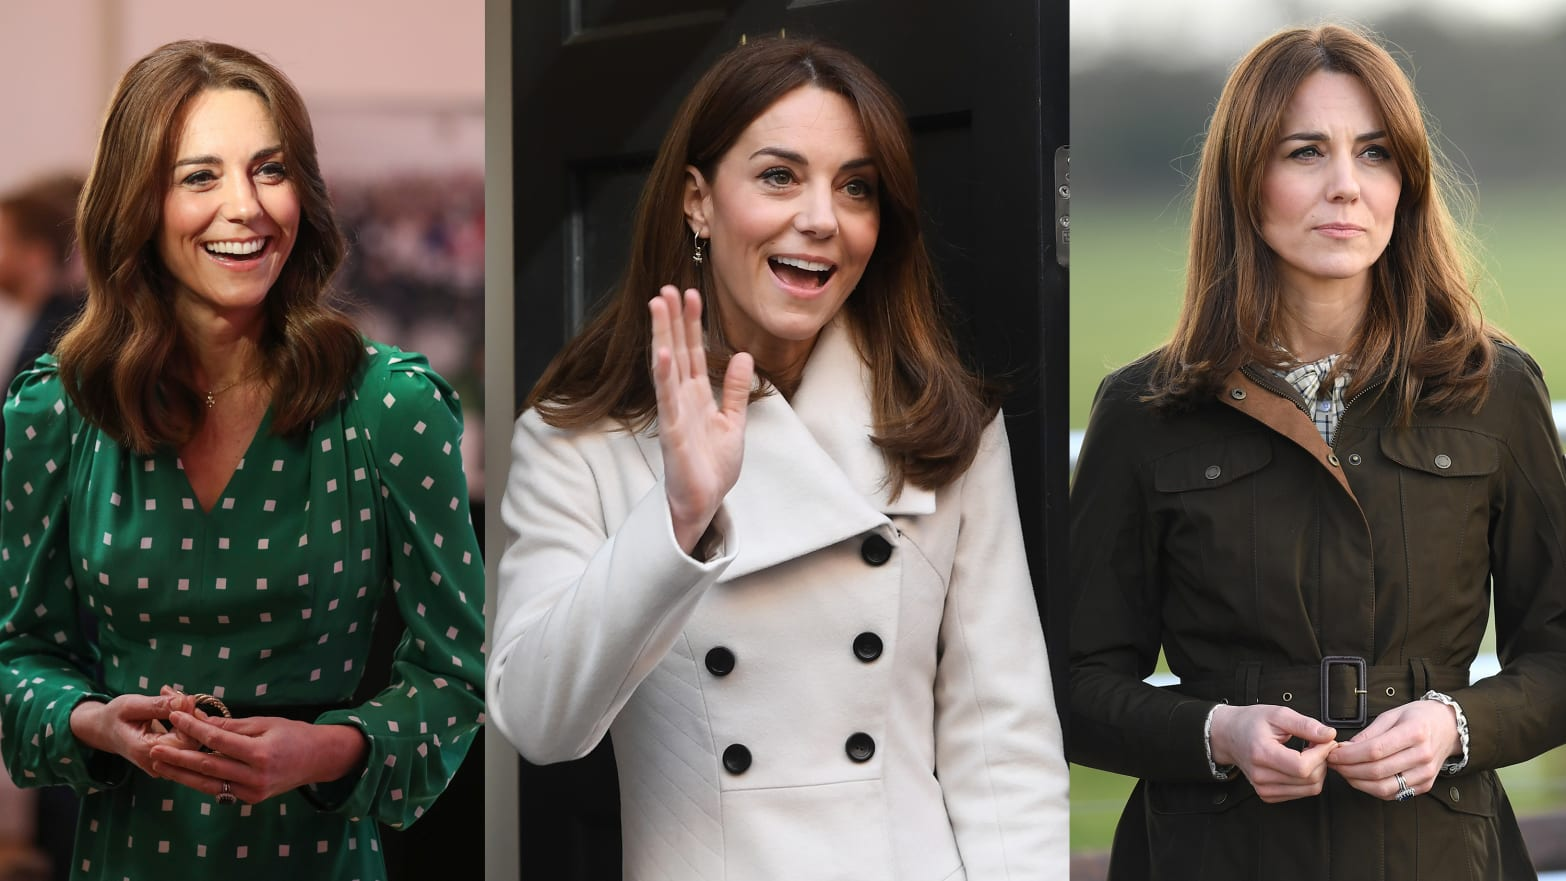 kate middleton s new haircut is a mystery we attempt to solve it kate middleton s new haircut is a